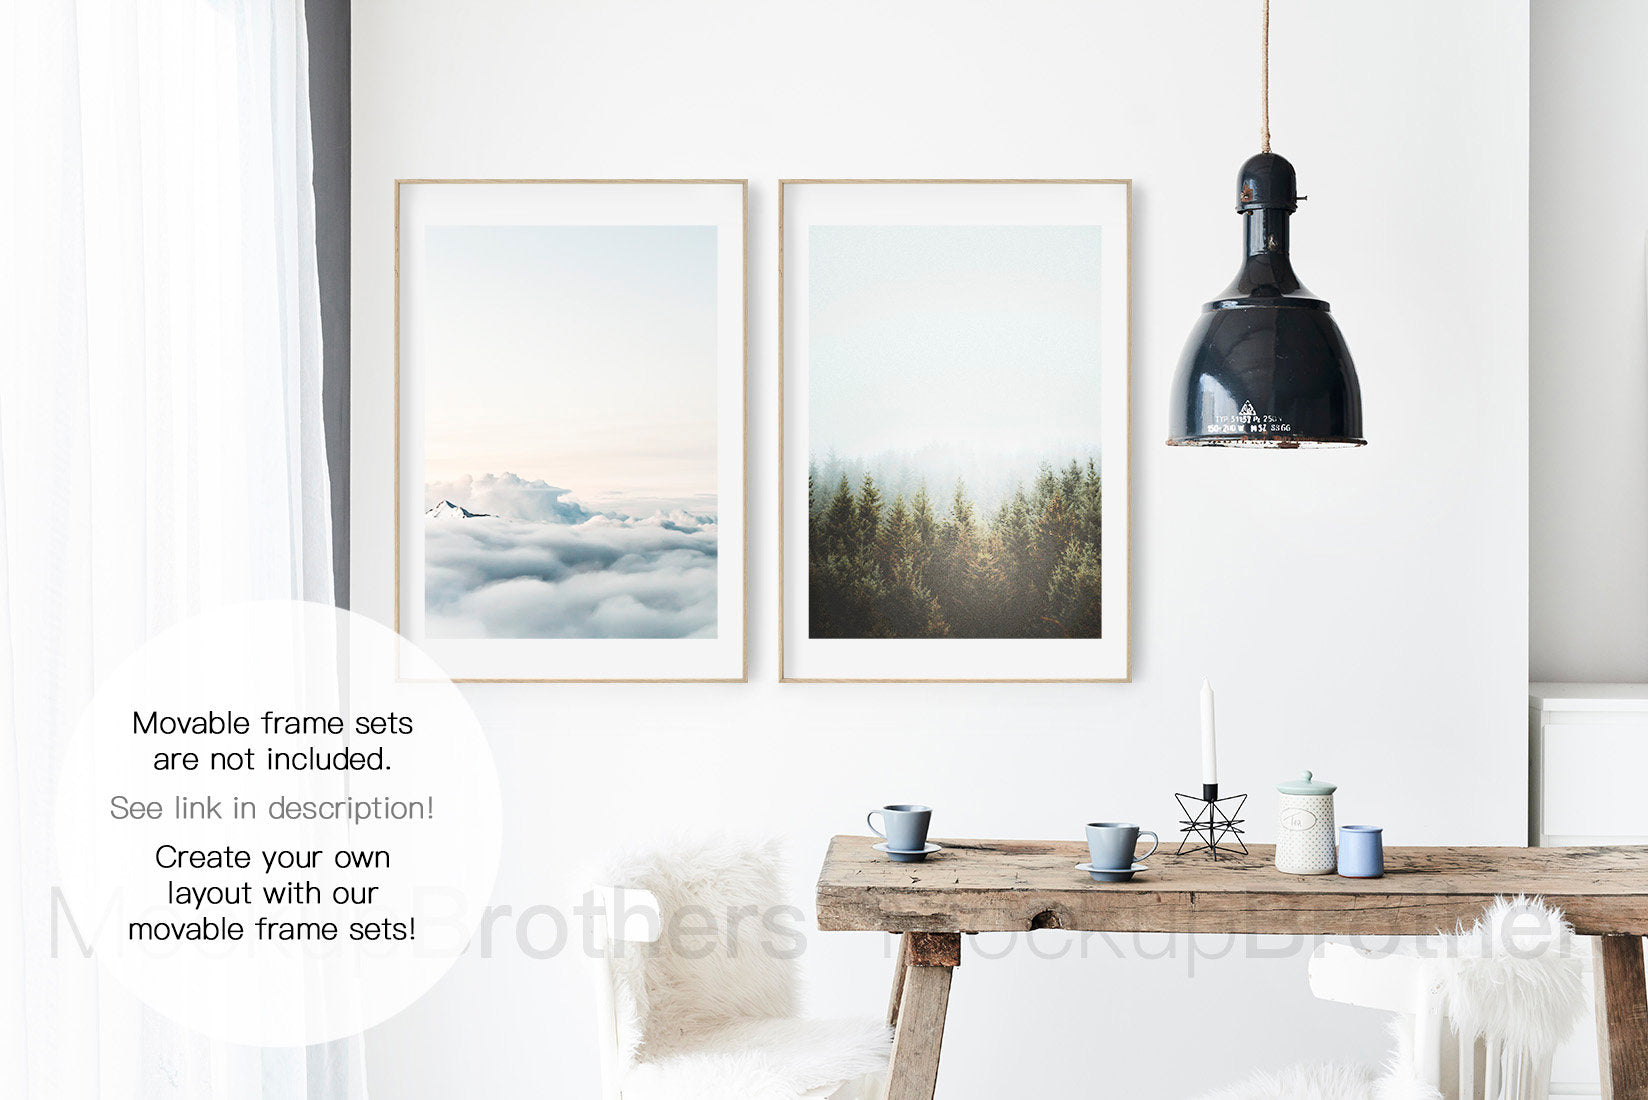 Wall art mockup in nordic interior